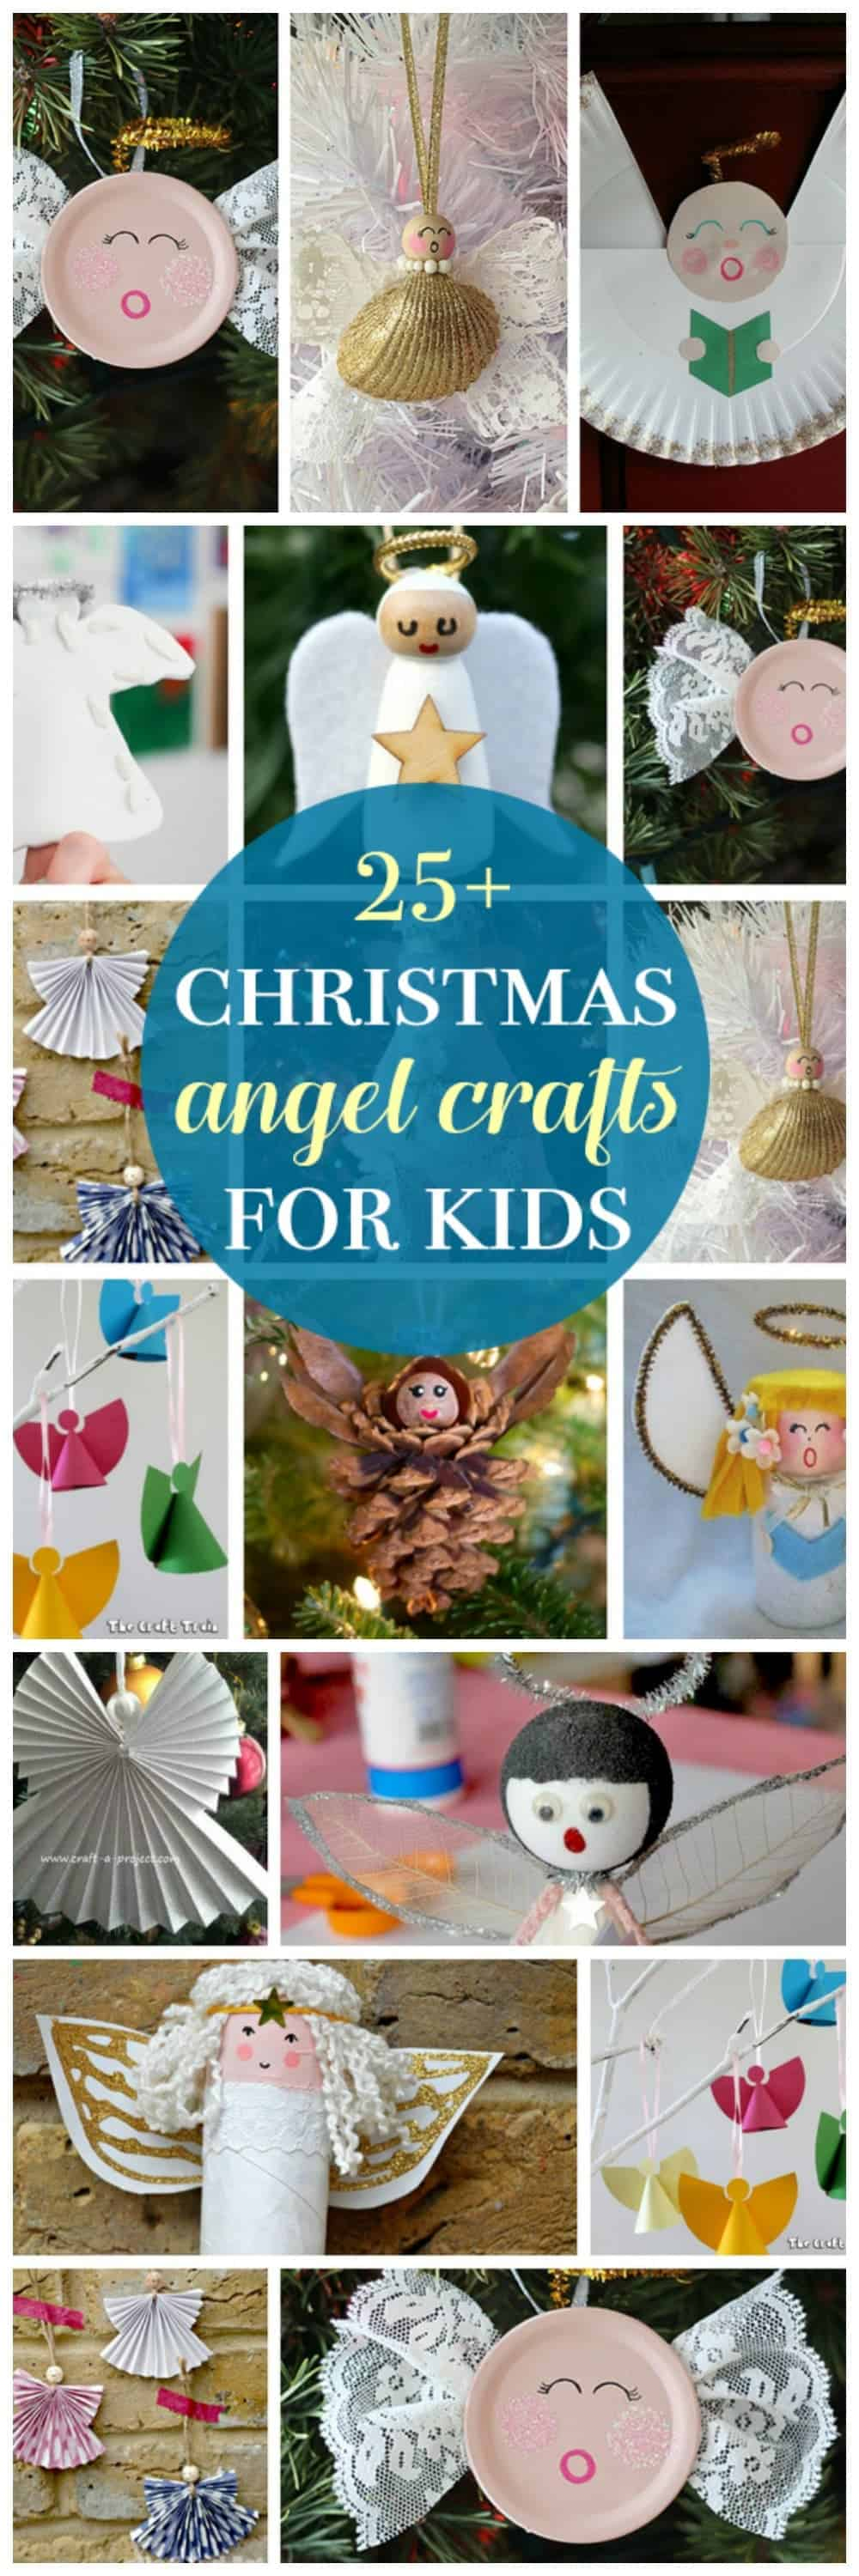 Angel crafts are the perfect Christmas activity to do with kids after reading the classic Christmas story, or while listening to some Christmas carols!